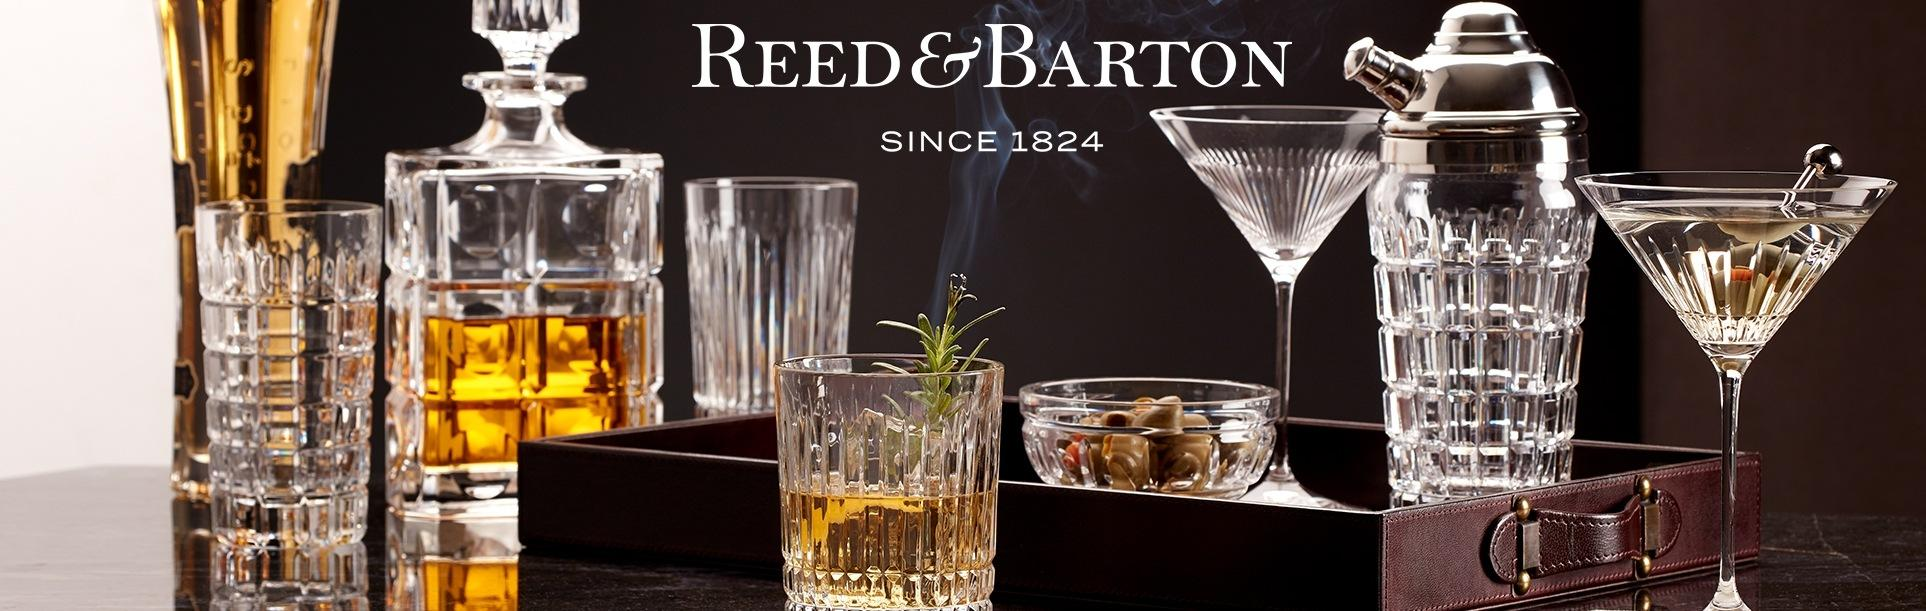 Reed & Barton lifestyle products slide 2